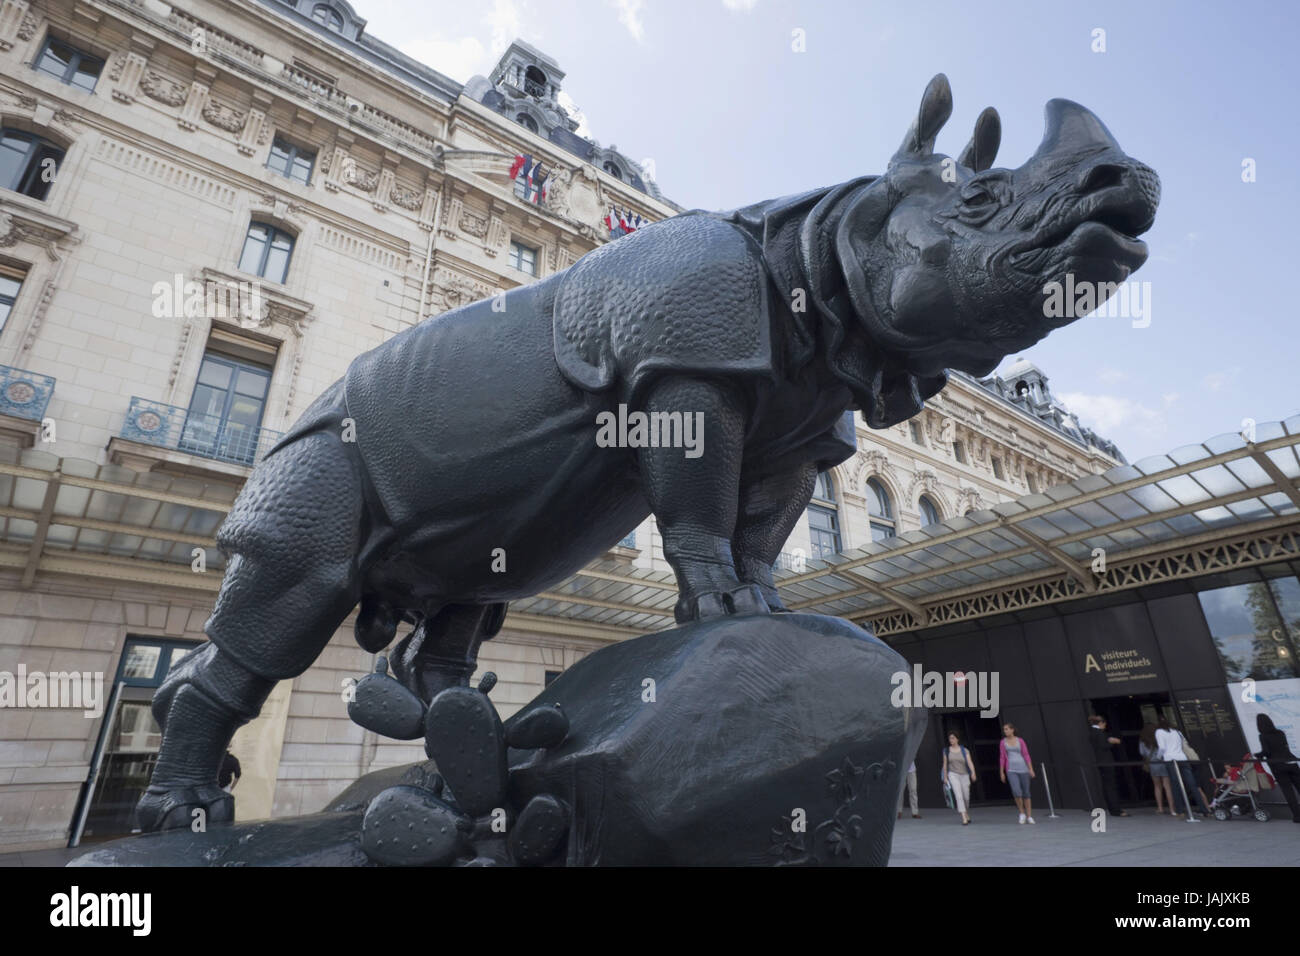 France,Paris,Musee d'Orsay,rhinoceros sculpture of Alfred Jacquemart, - Stock Image